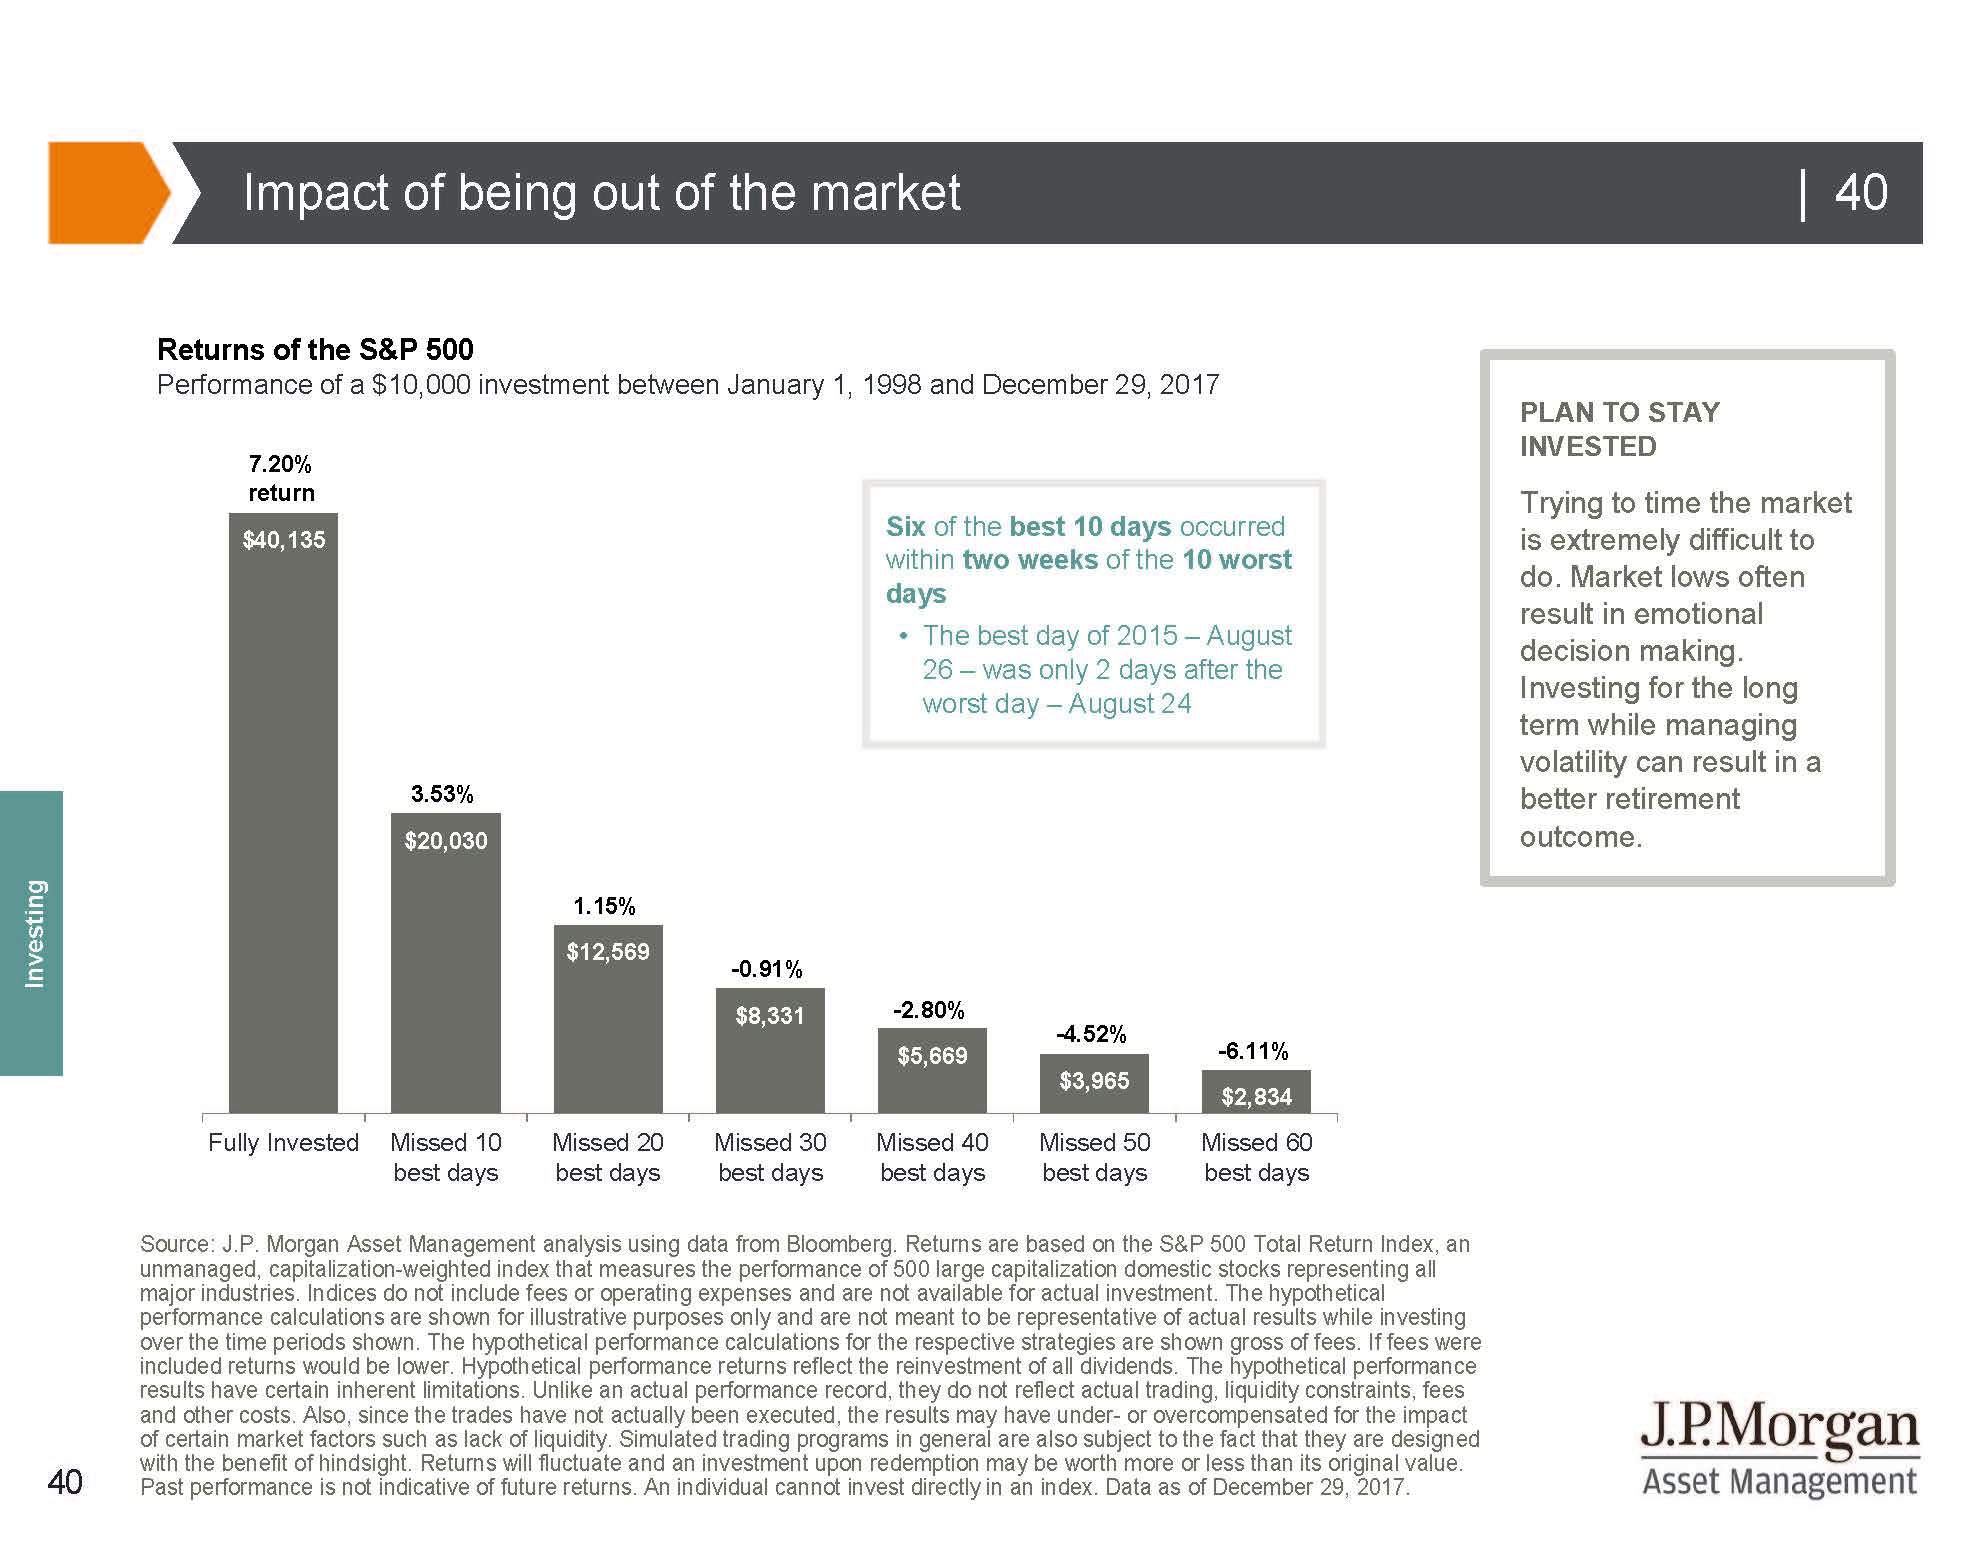 impact of being out of the market graph